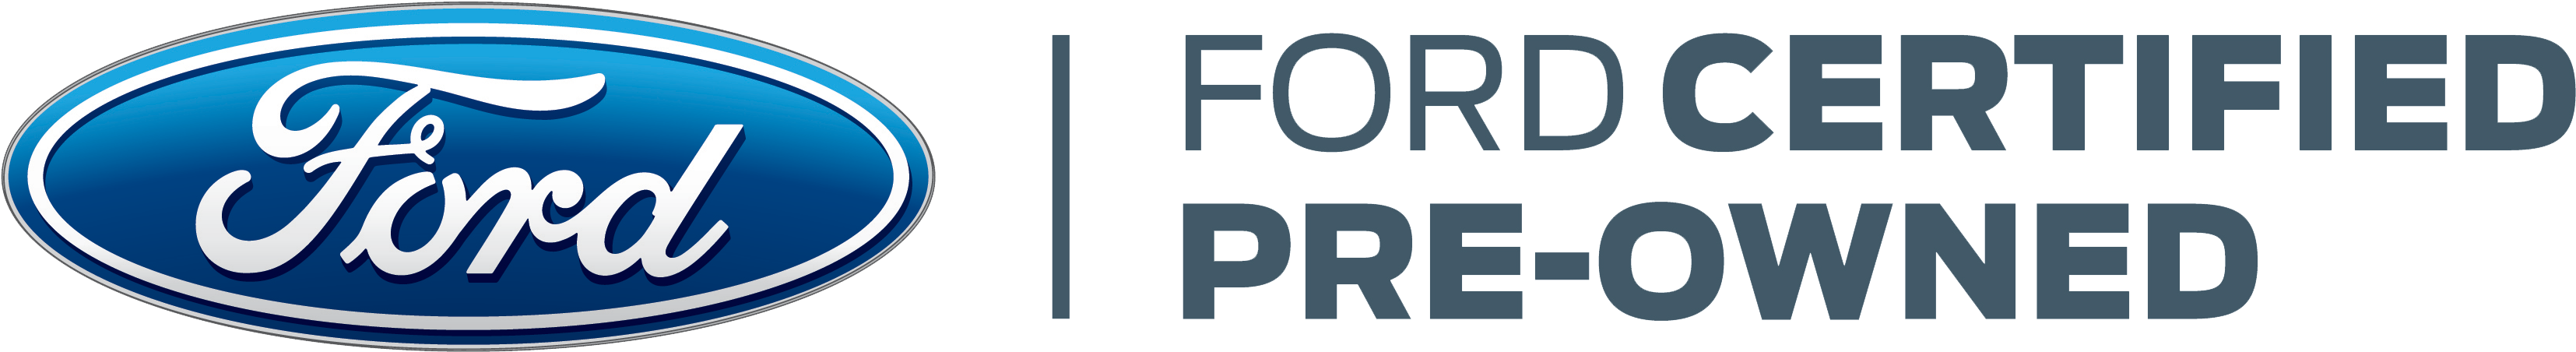 Download Certified - Ford Certified Pre Owned Logo Png - Full Size